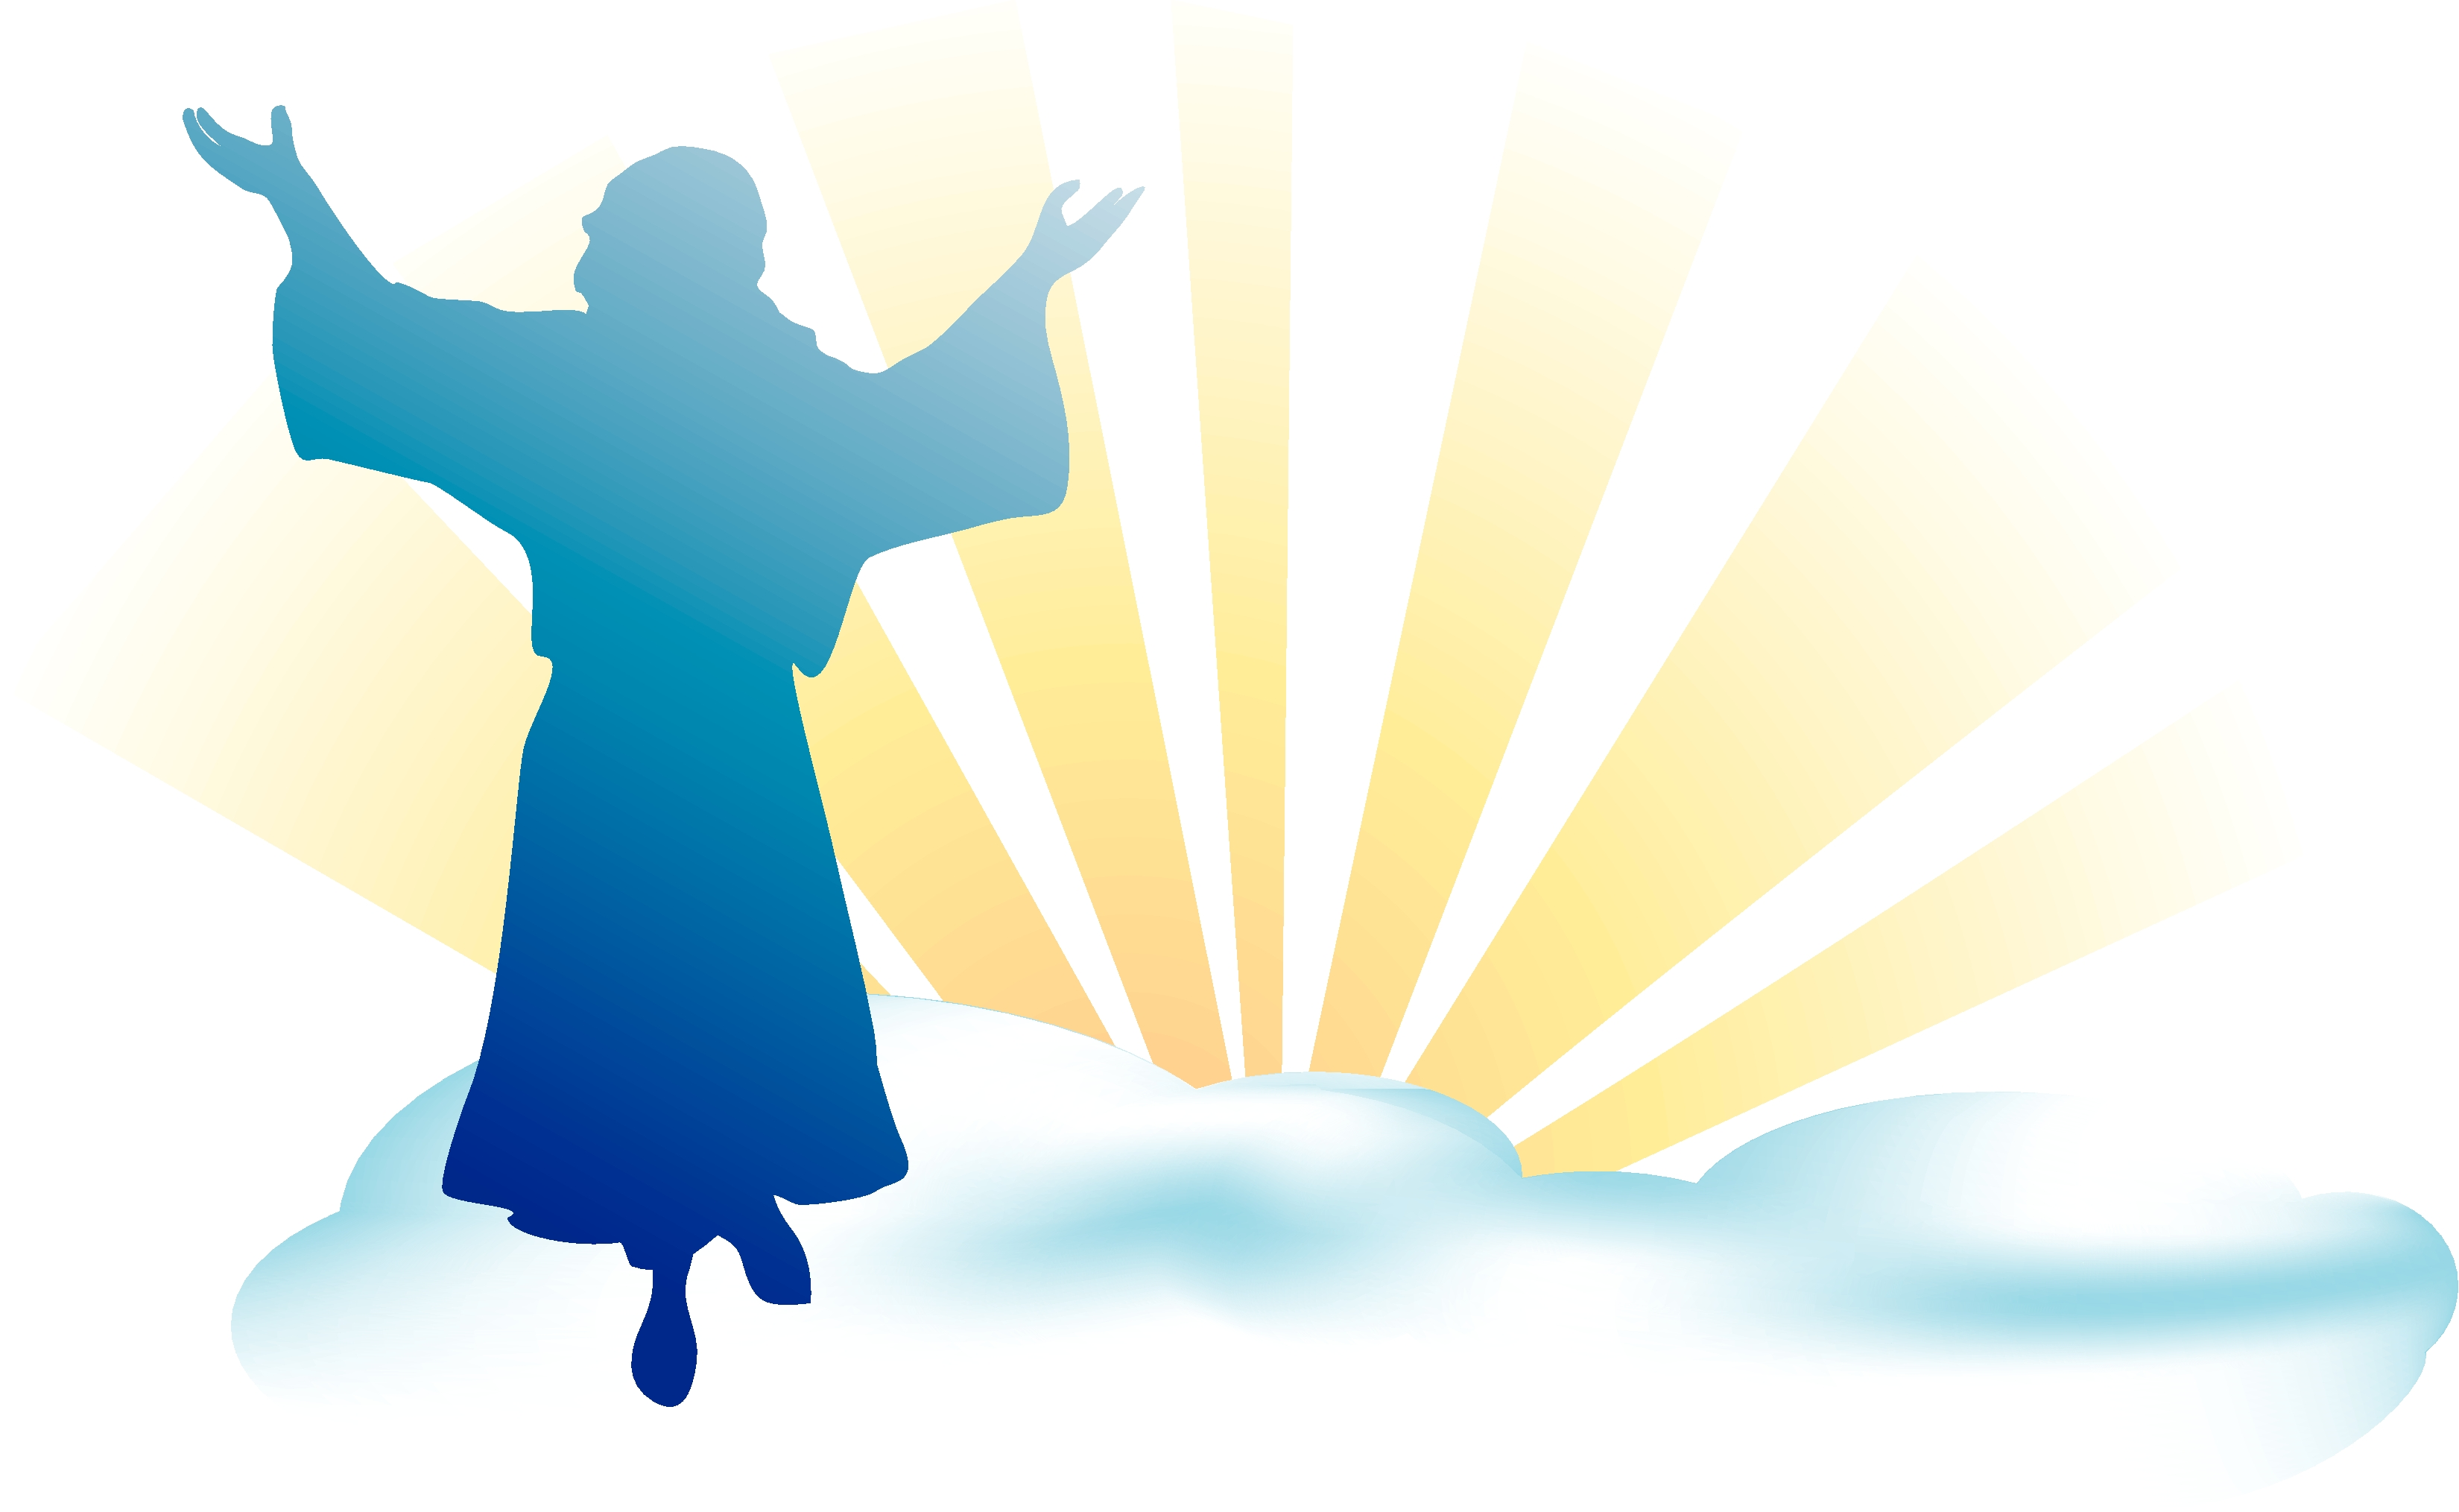 christ silhouette clip art at getdrawings com free for personal rh getdrawings com clipart of jesus blessing clip art of jesus birth